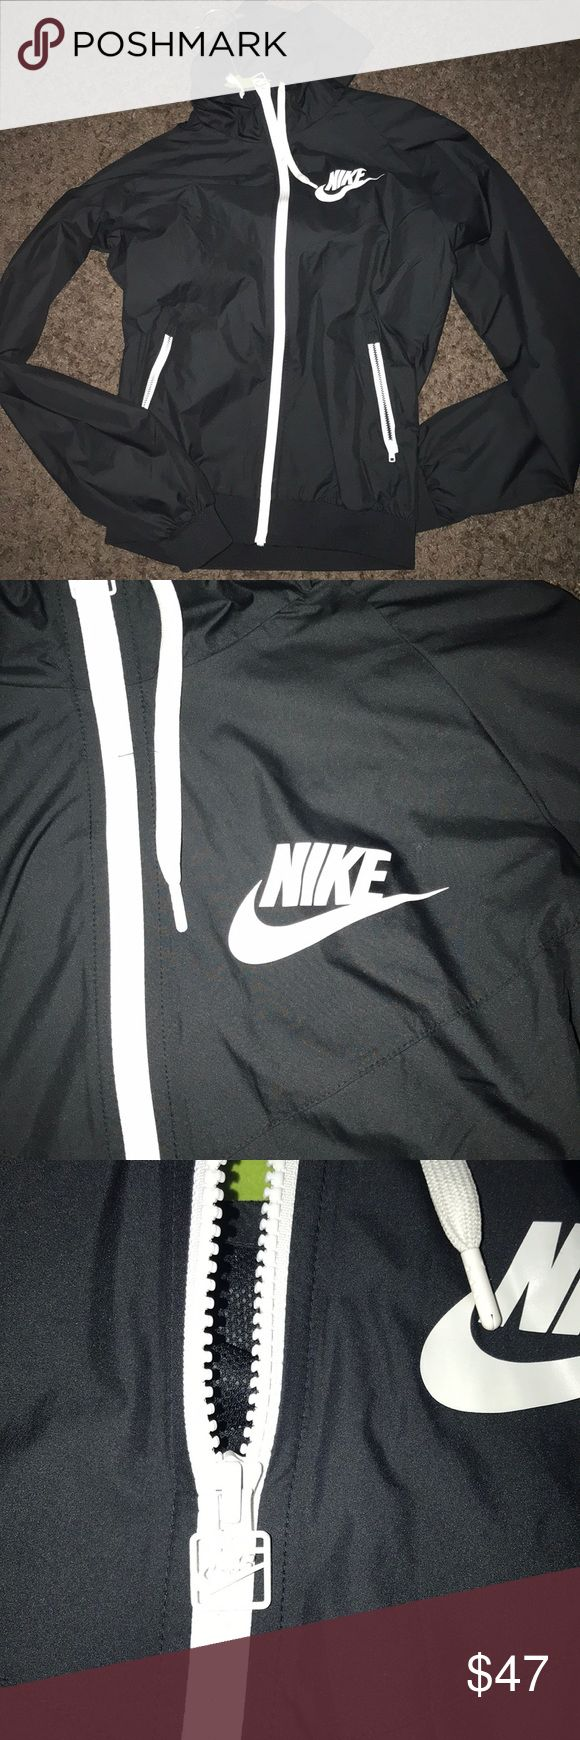 NWOT PERFECT CONDITION NIKE WINDRUNNER NWOT, Nike windrunner!!! Retail for $110 great for any occasion!! Nike Jackets & Coats